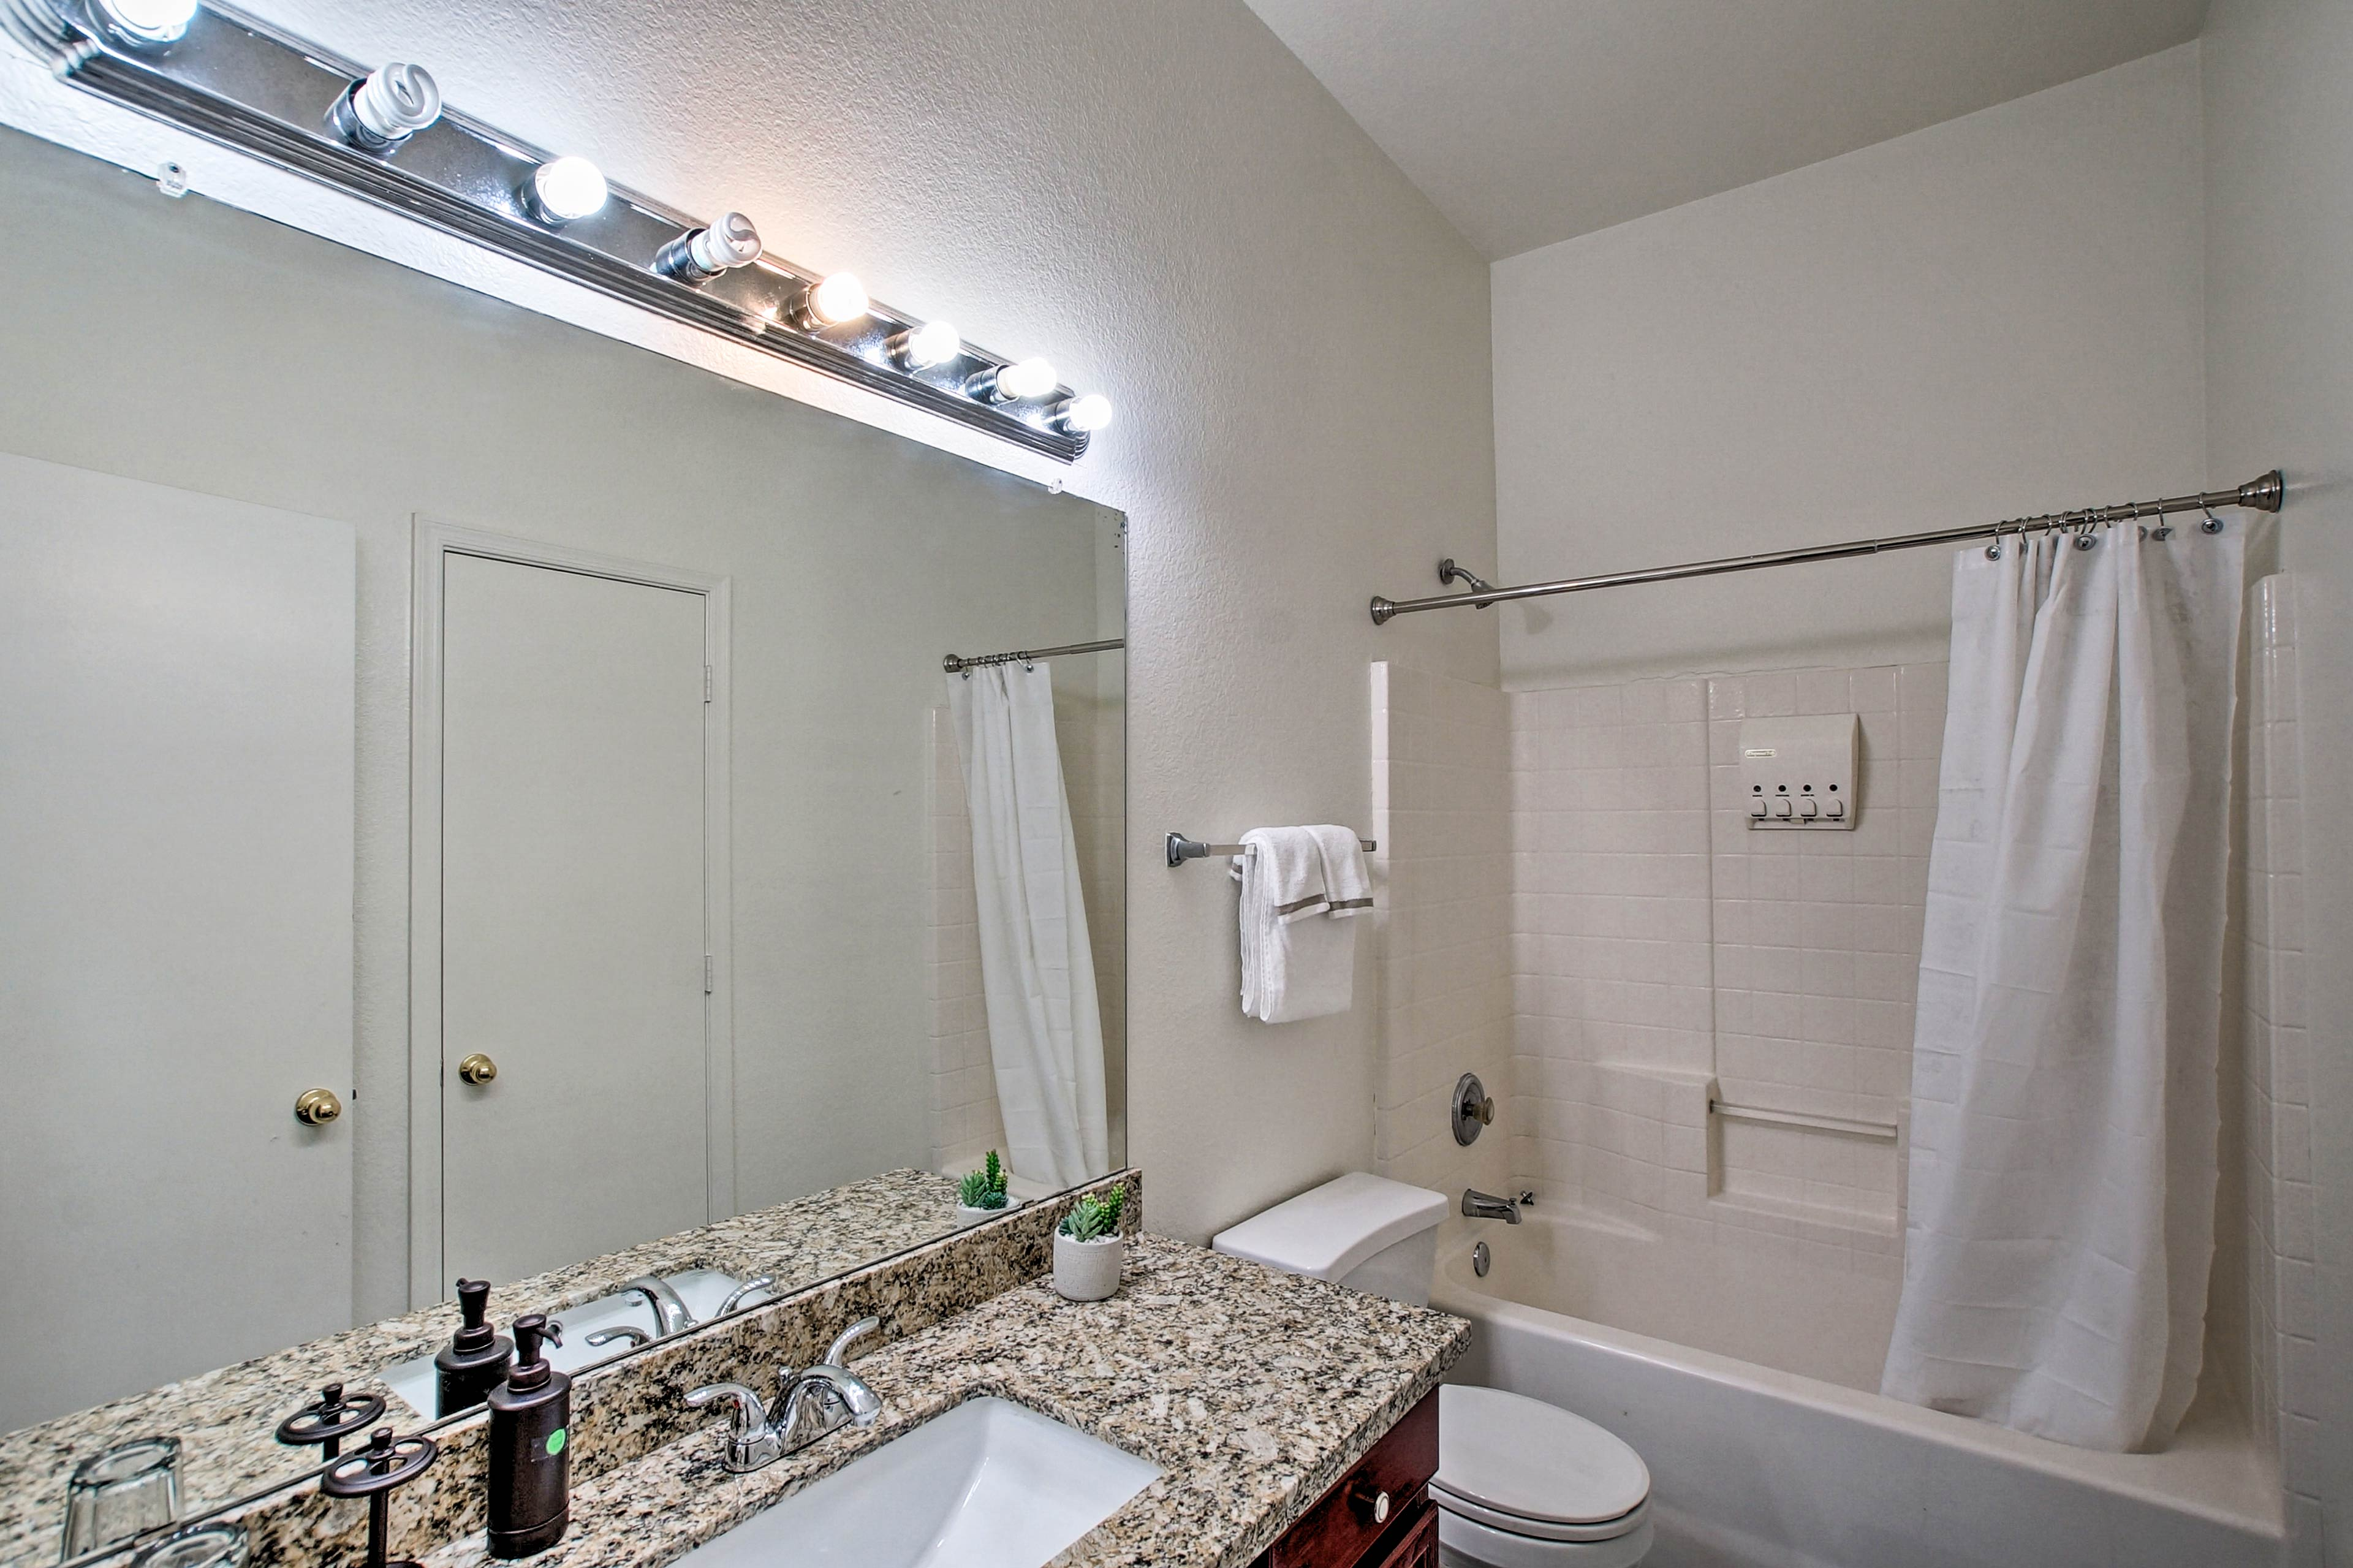 A second full bathroom offers additional privacy and complimentary toiletries.